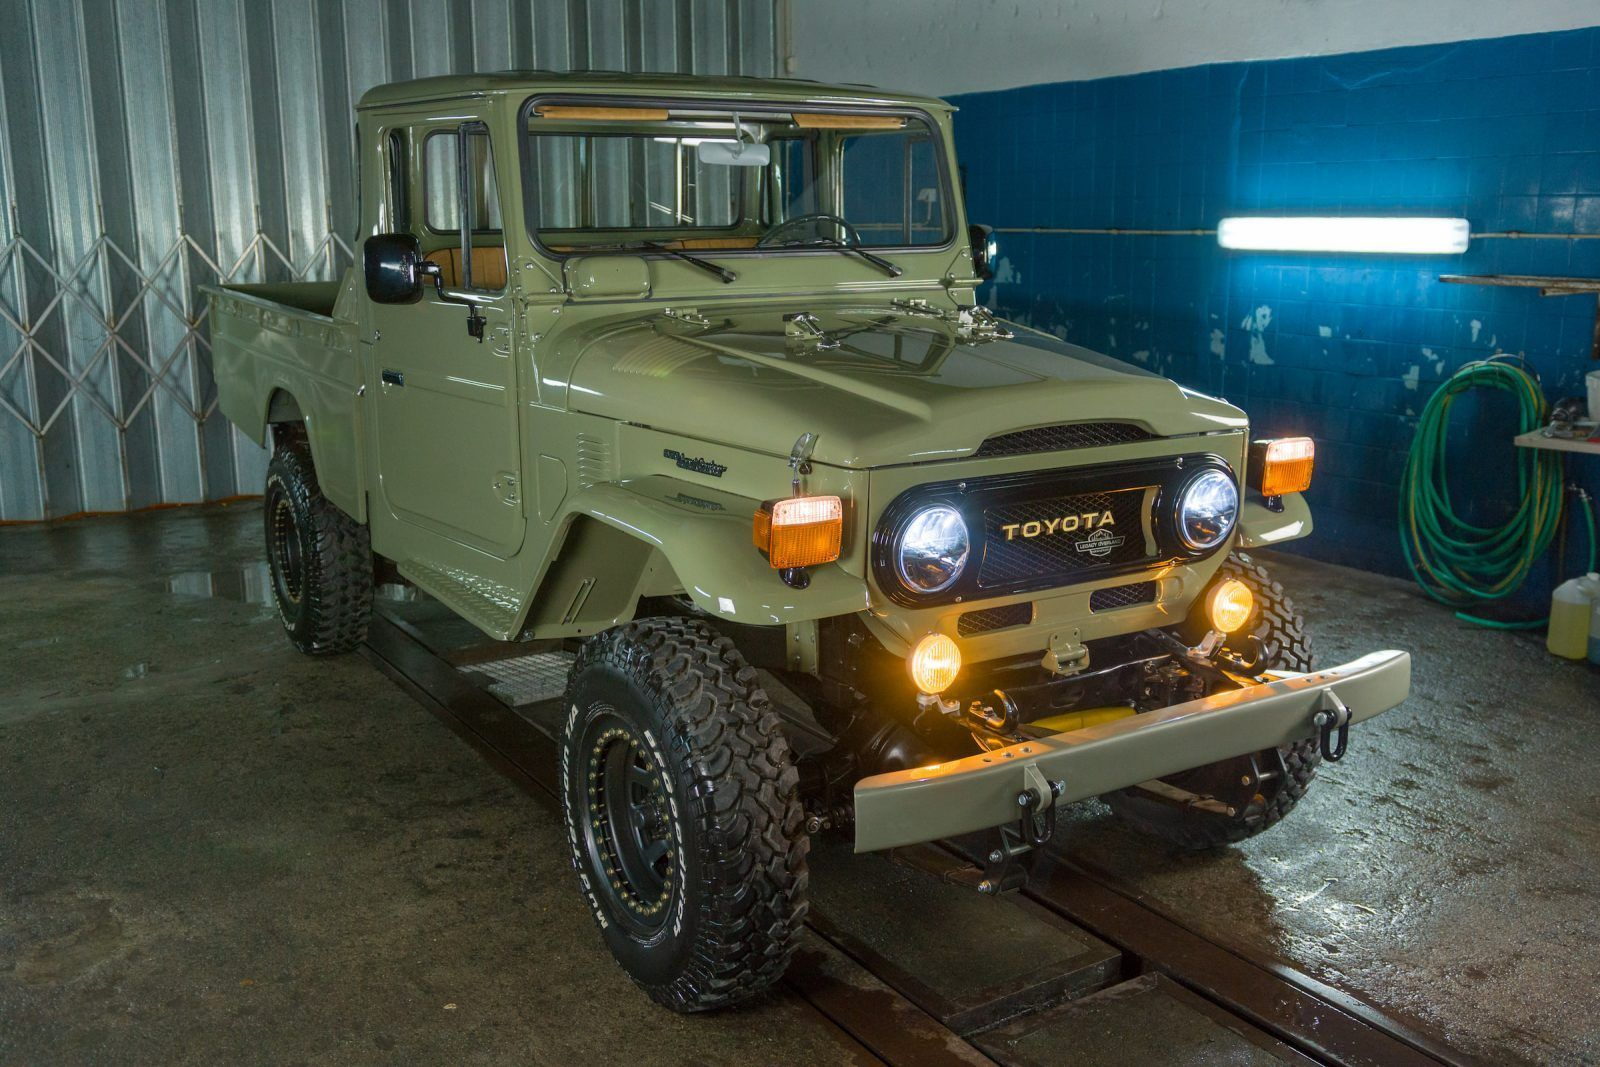 1978 Toyota Land Cruiser HJ45 Long Bed Pick Up Truck